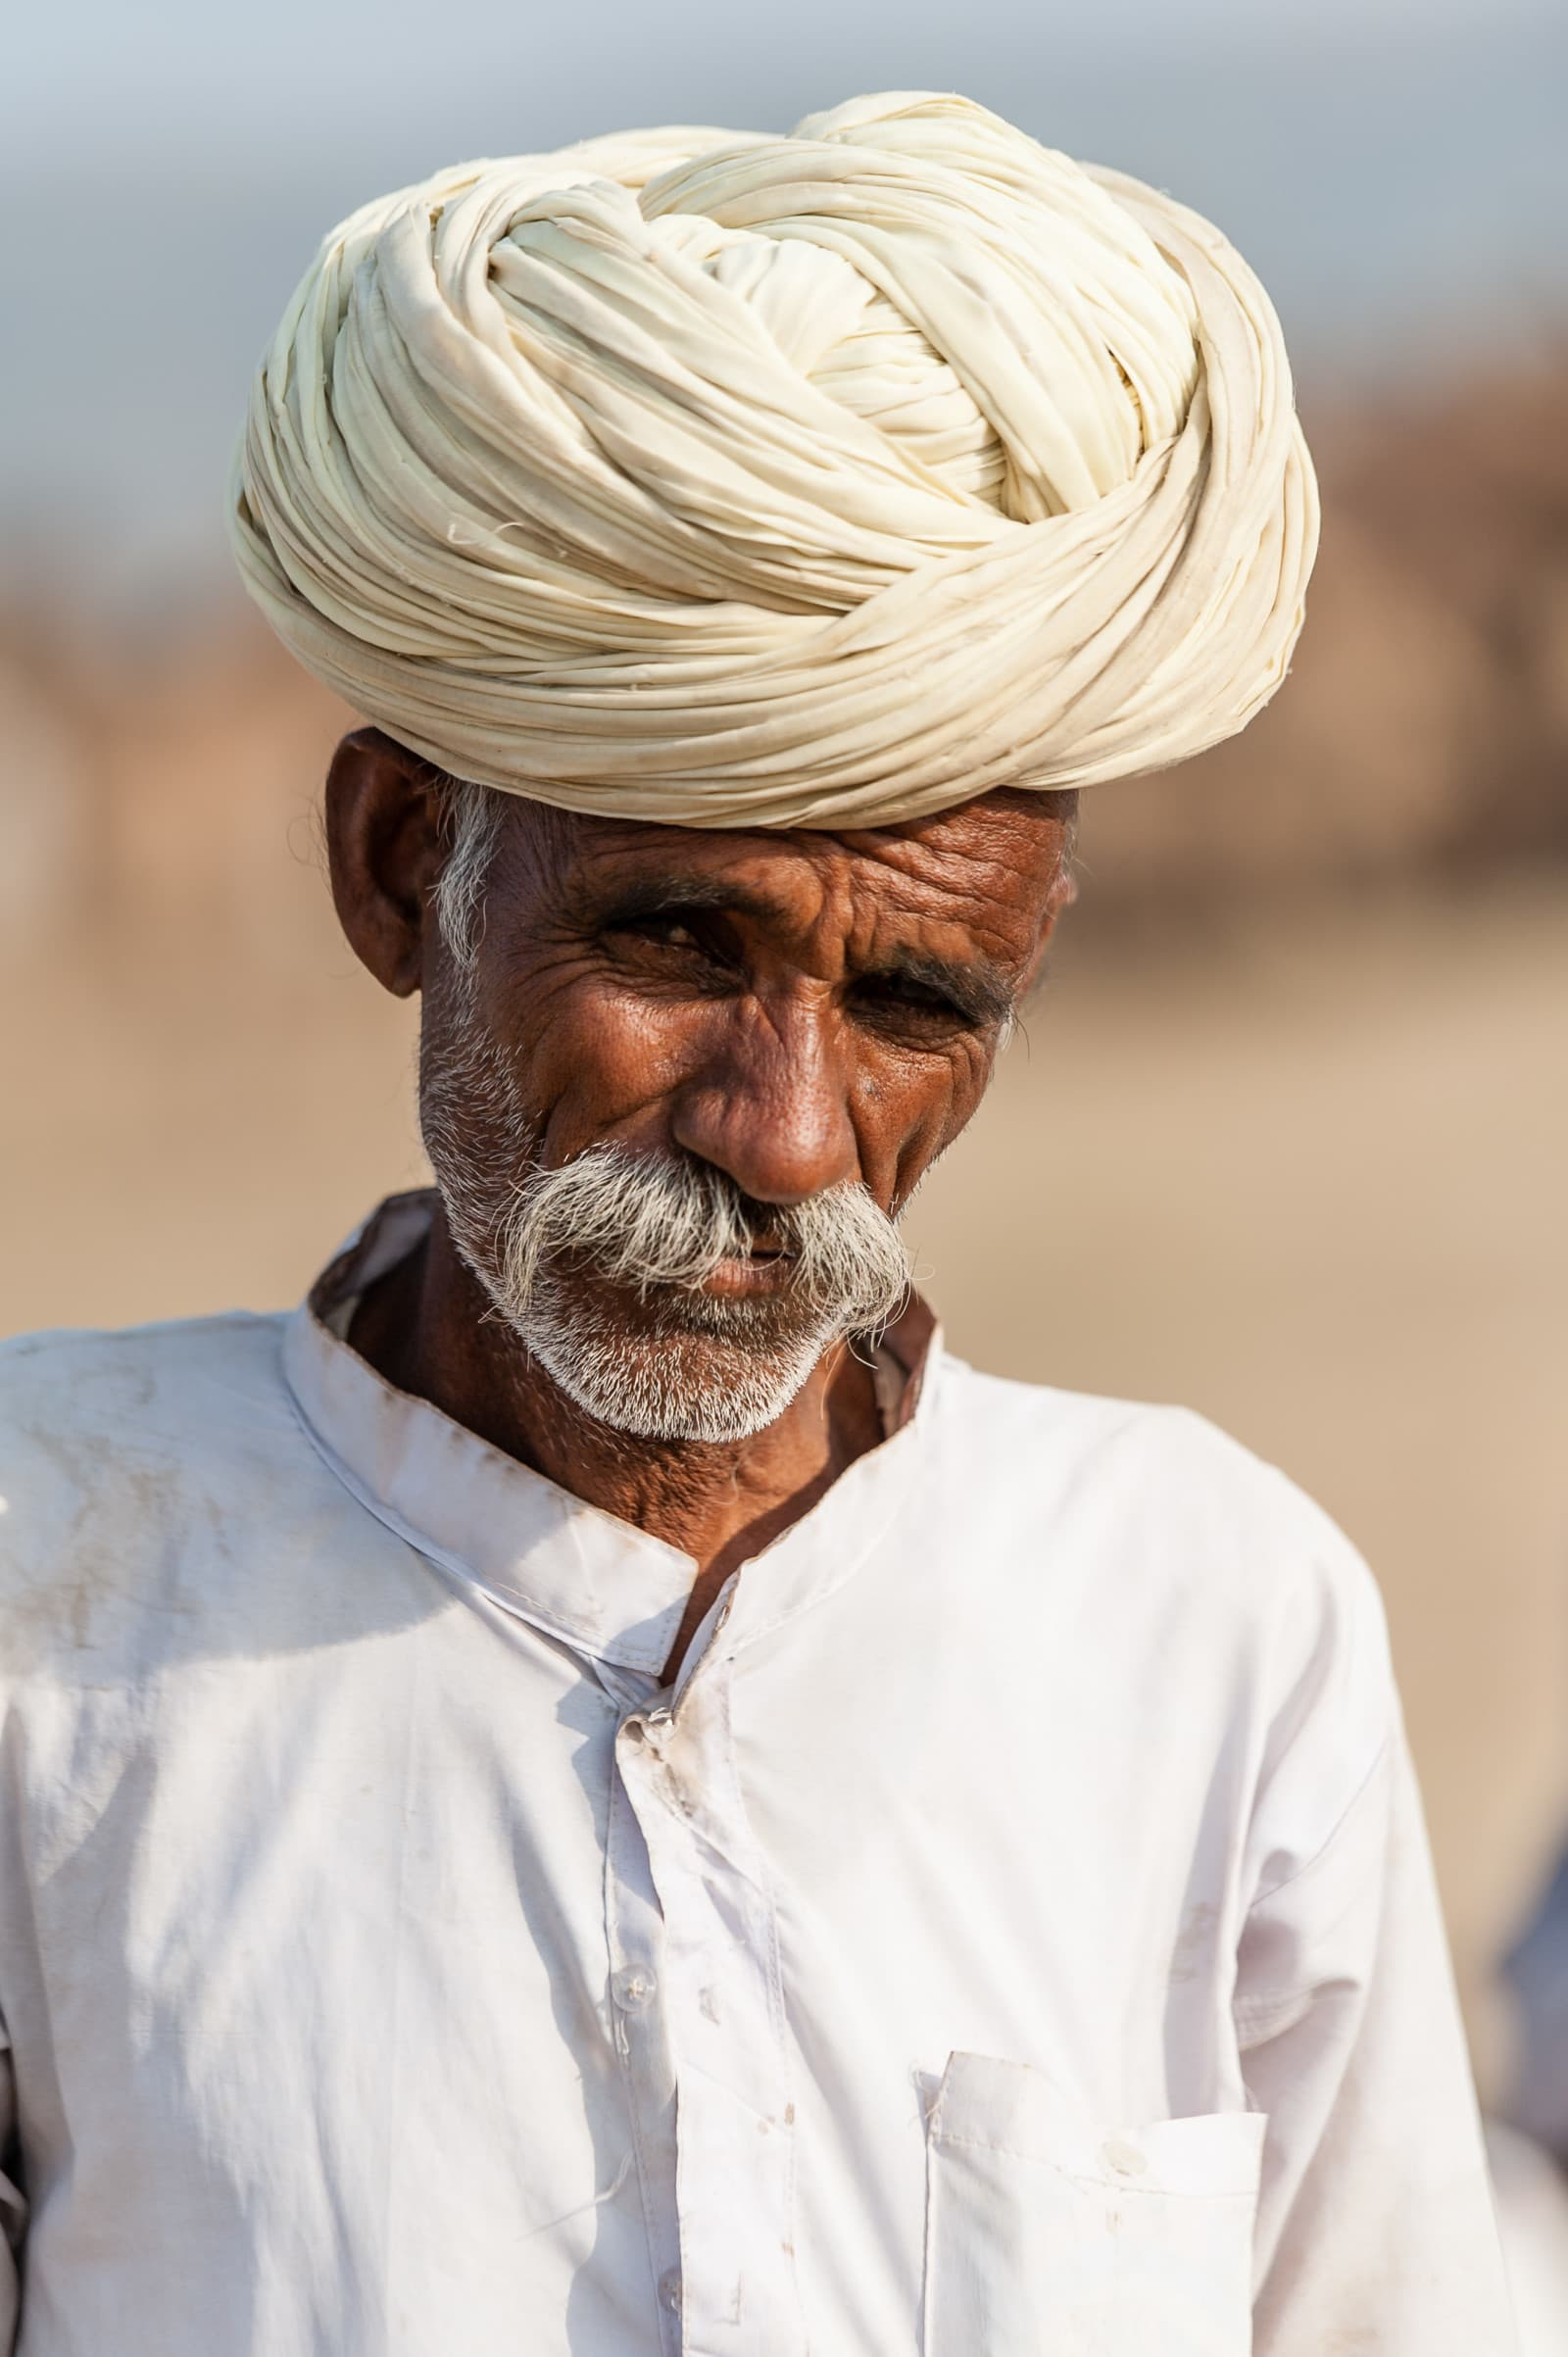 trader-portrait-camel-pushkar-camel-fair-london-freelance-photographer-richard-isaac-3200